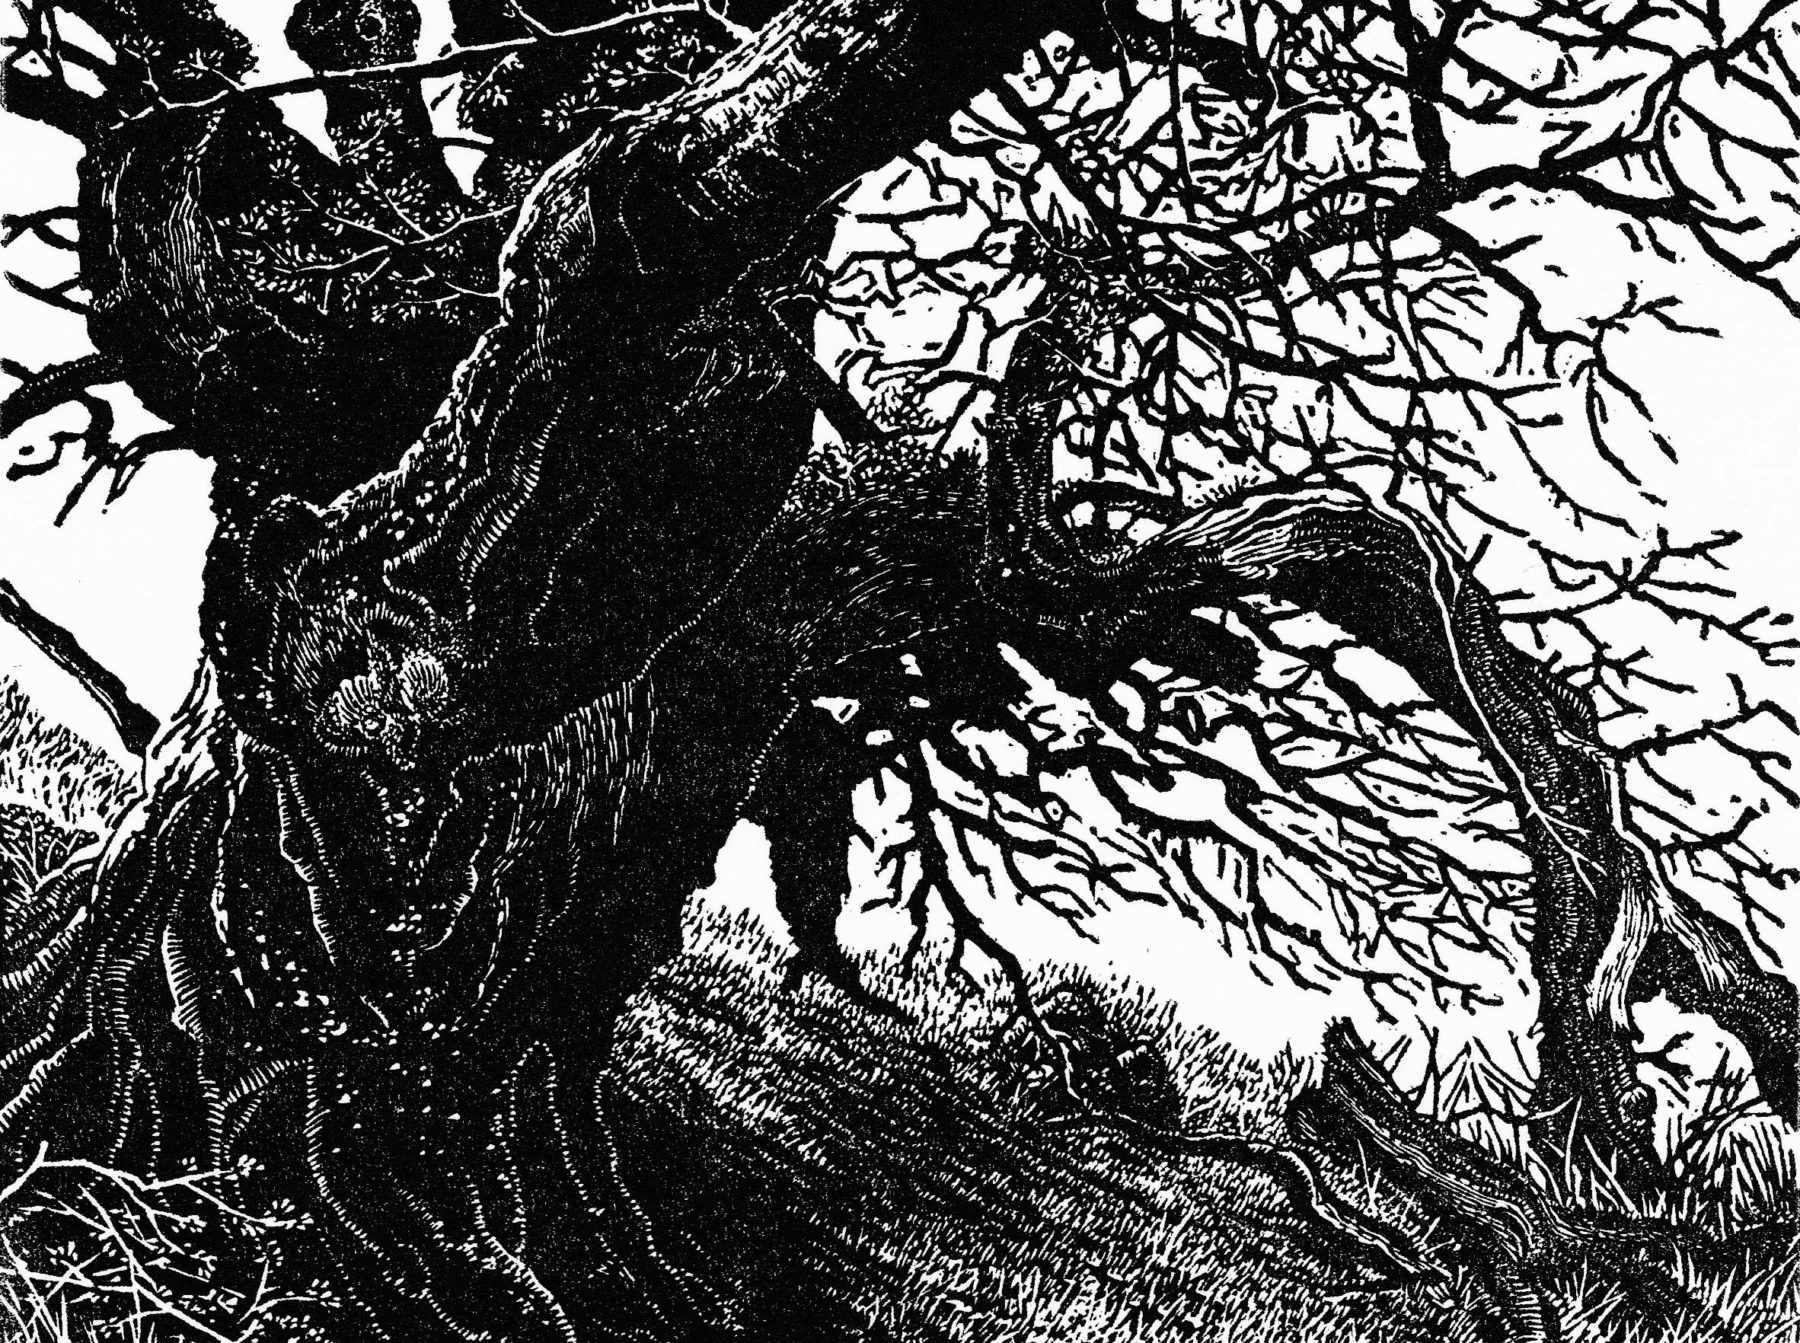 The left hand side of this black and white woodcut image is taken over by a wide ancient tree trunk. The tree leans slightly to the right, and its branches and leaves tumble forward onto the floor below.